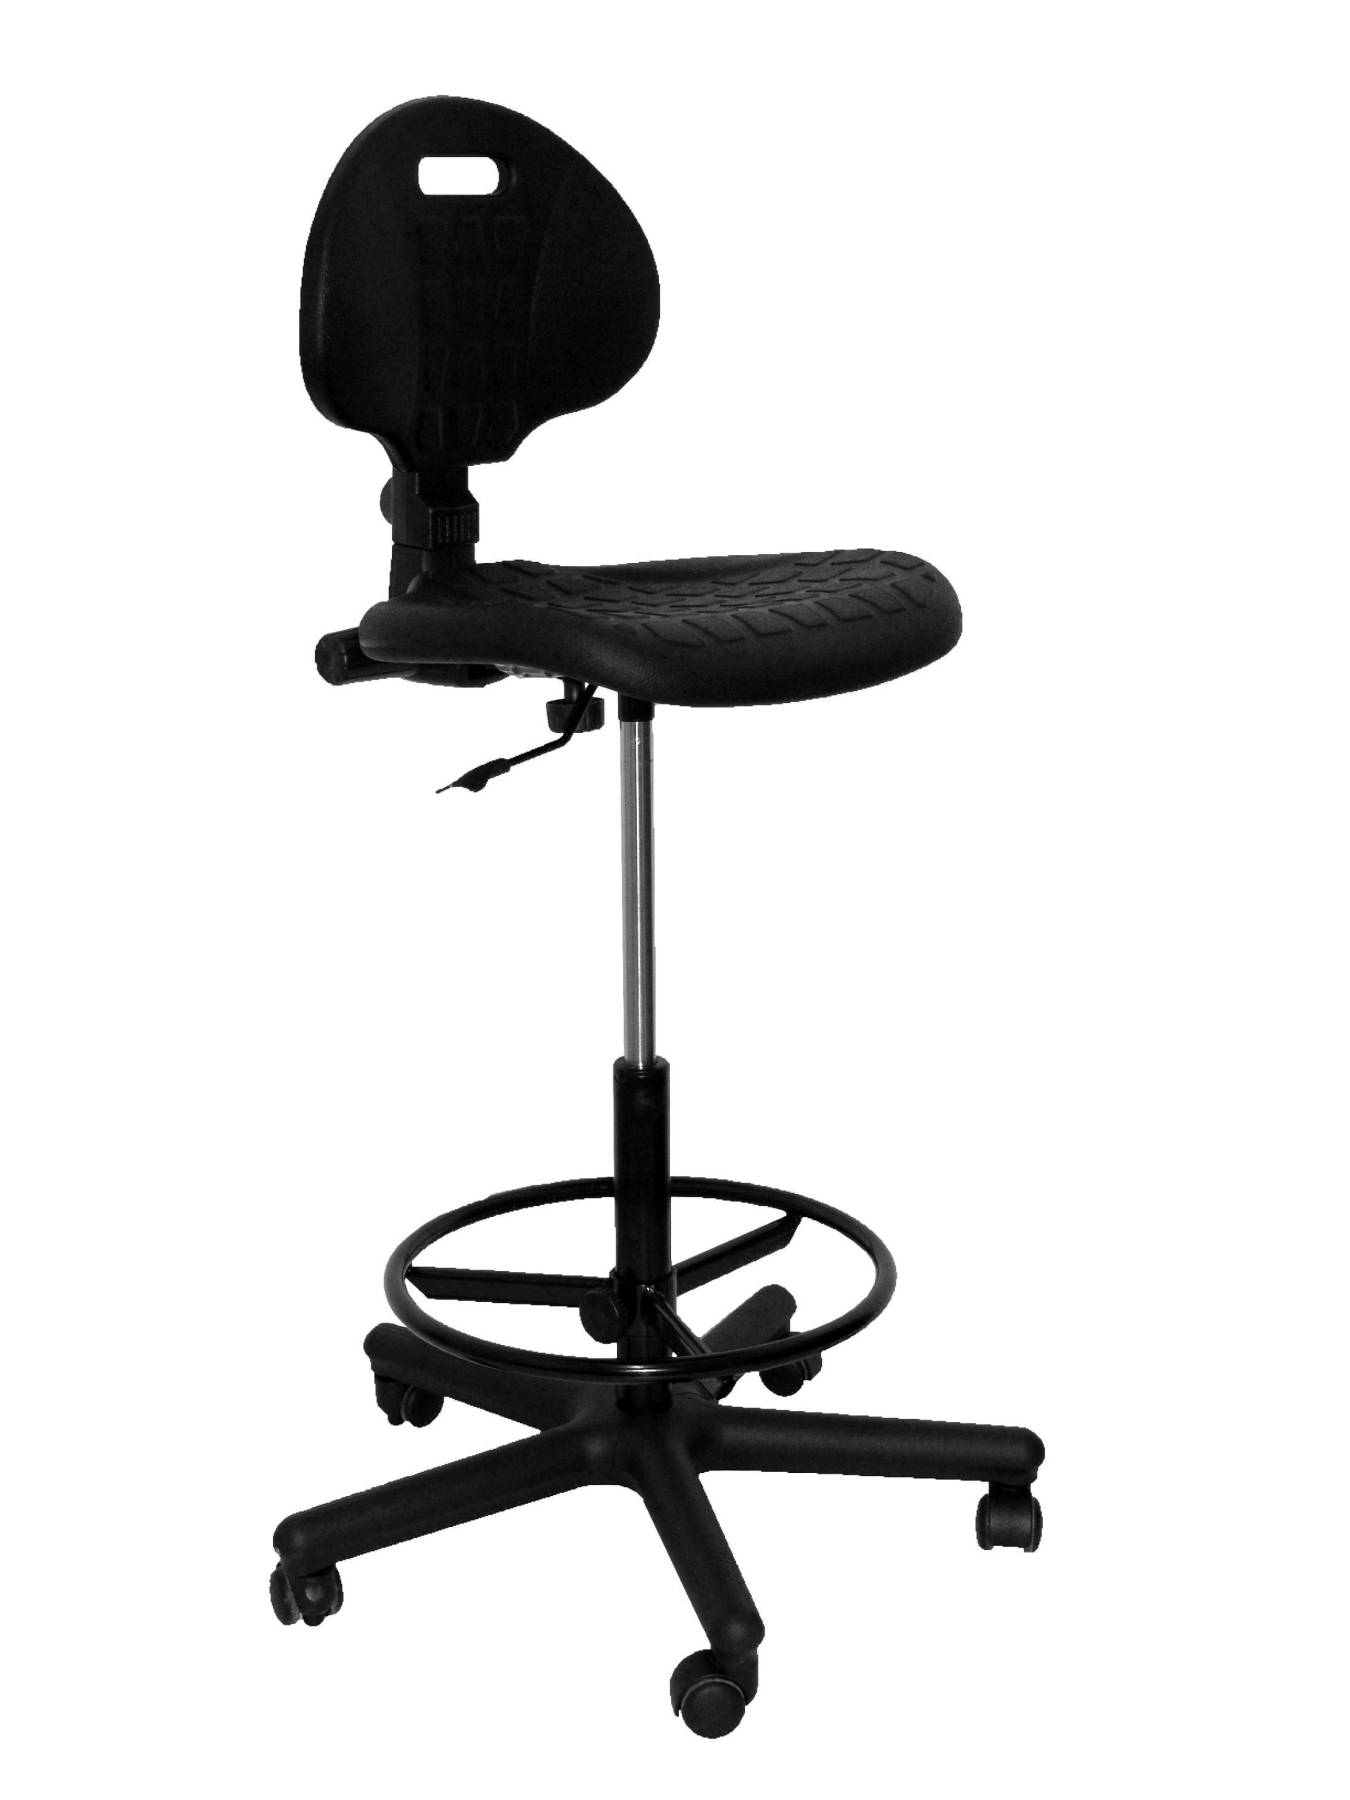 Stool Working Ergonomic, Swivel And Dimmable In High Altitude (hoop Foot Pegs Chrome) Up Seat And Backstop's Poliure